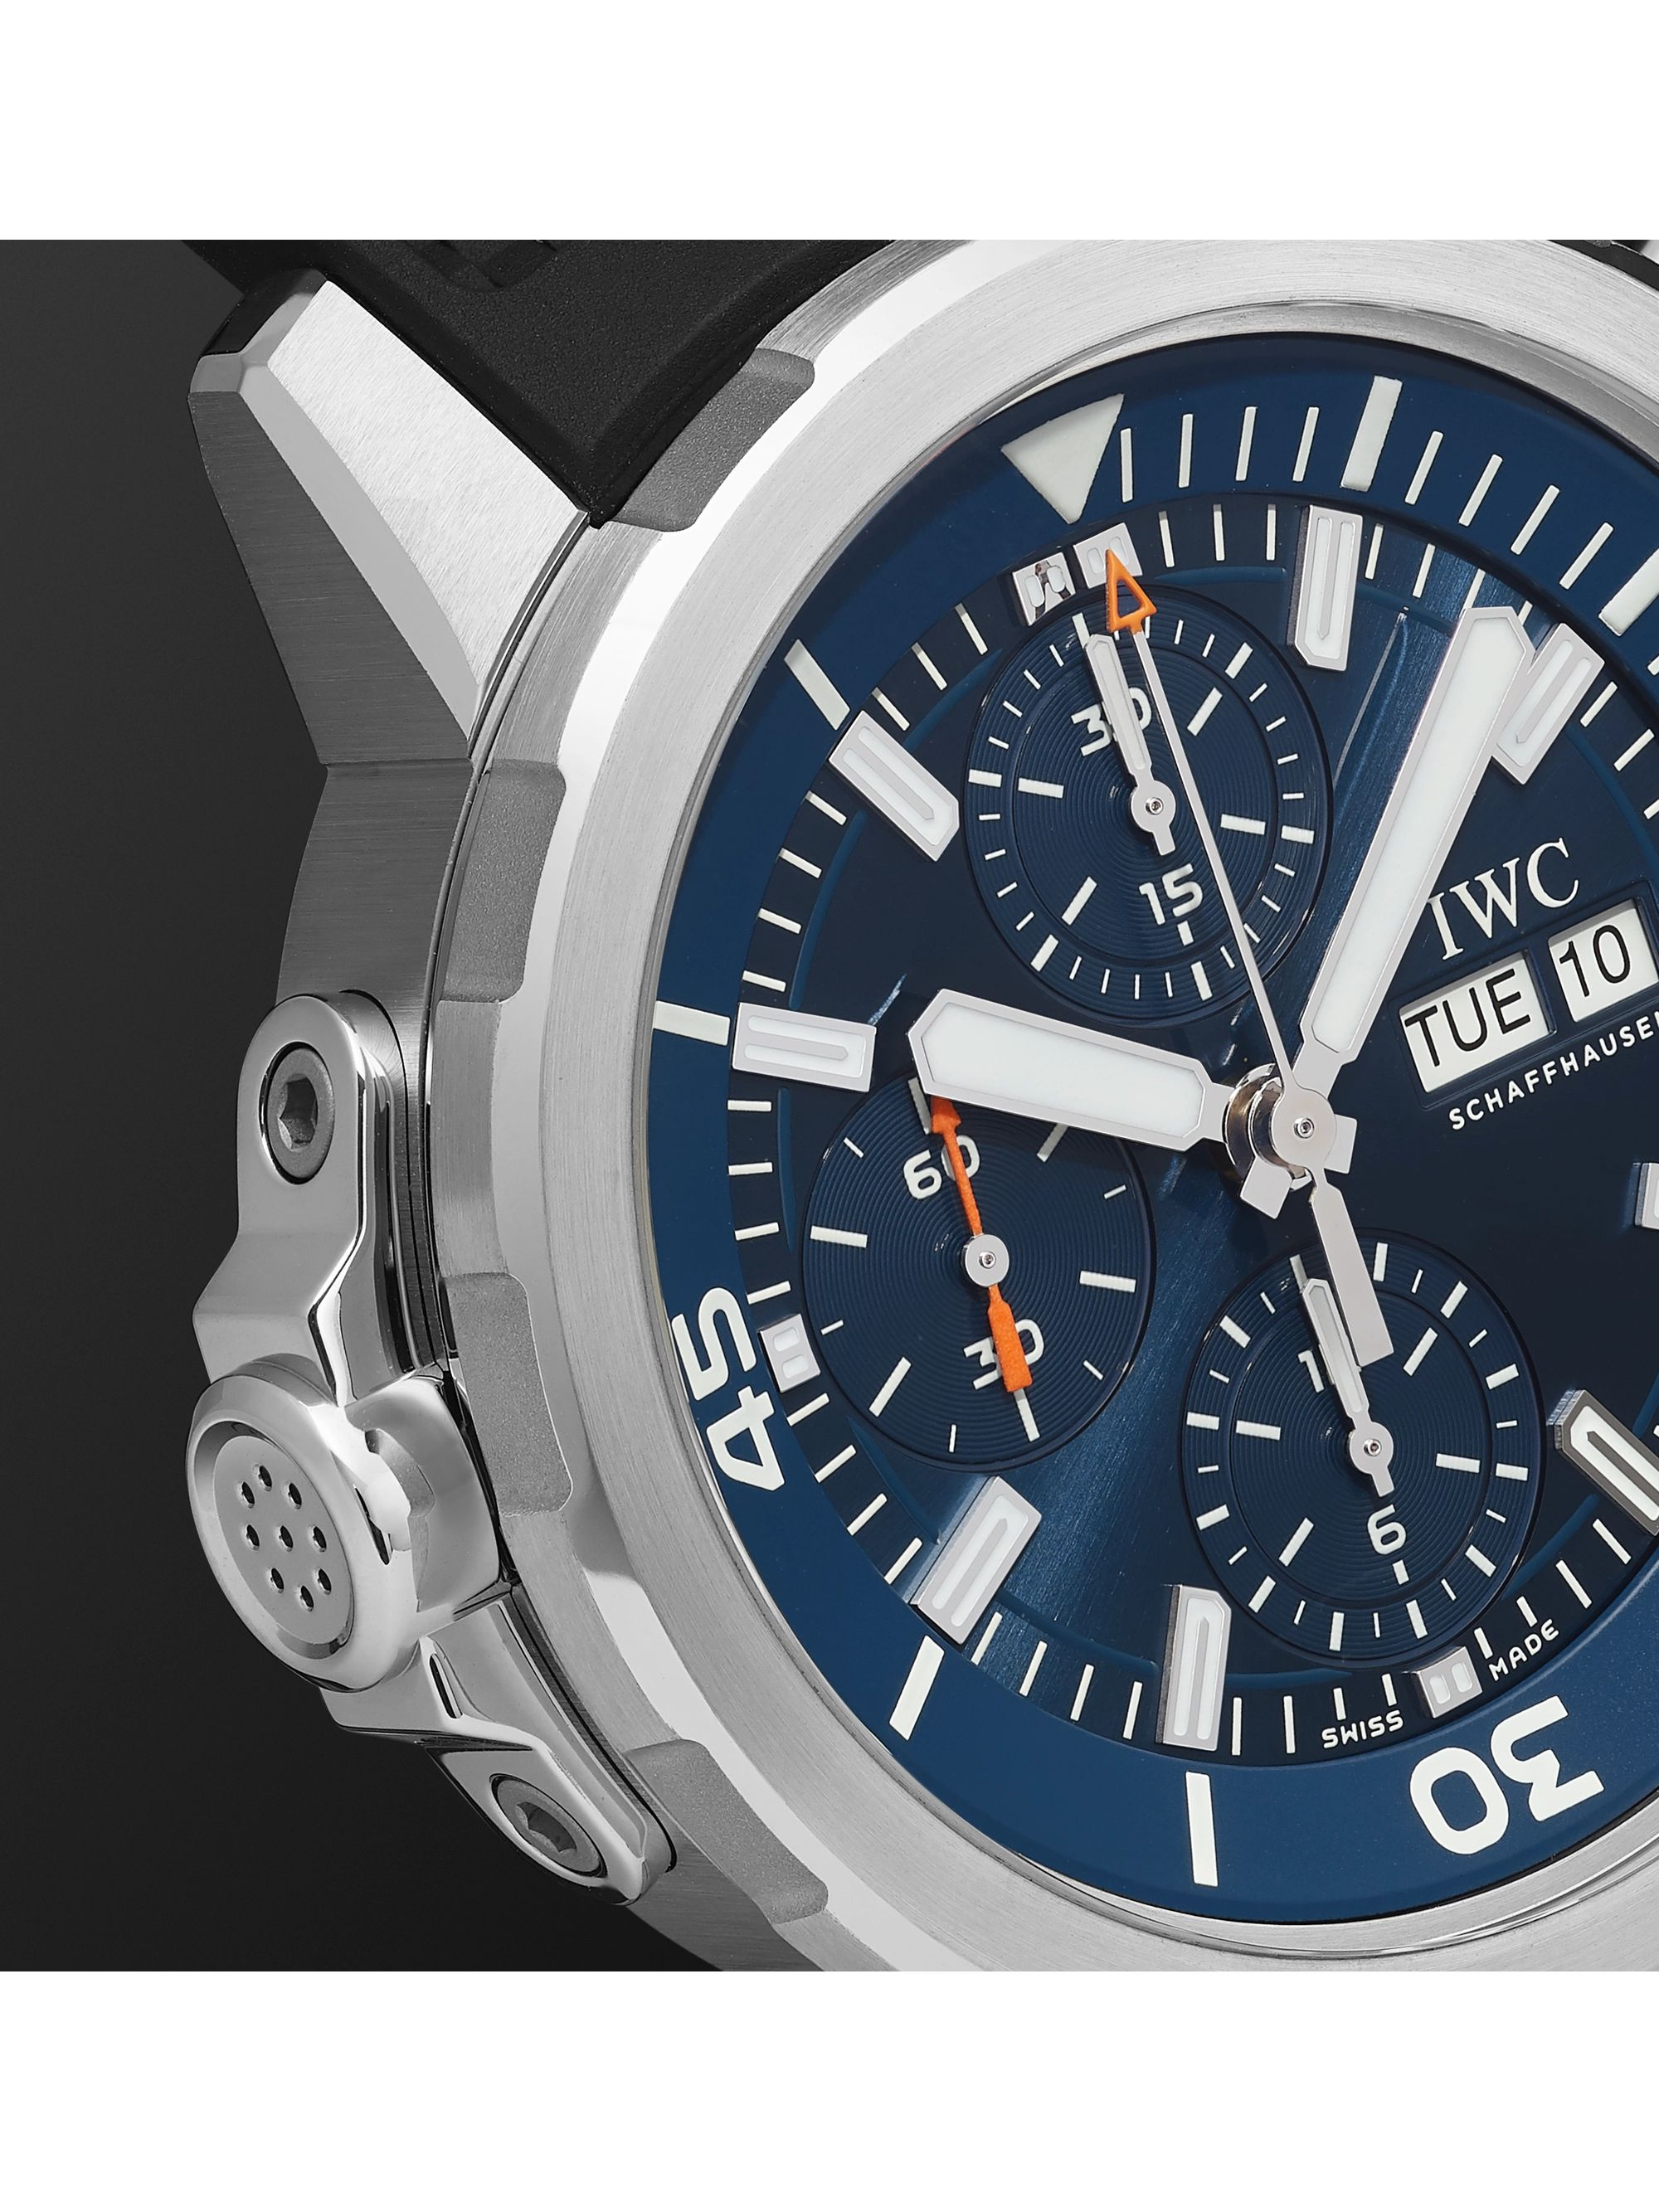 IWC SCHAFFHAUSEN Aquatimer Chronograph Expedition Jacques-Yves Cousteau Edition Automatic 40mm Stainless Steel and Rubber Watch